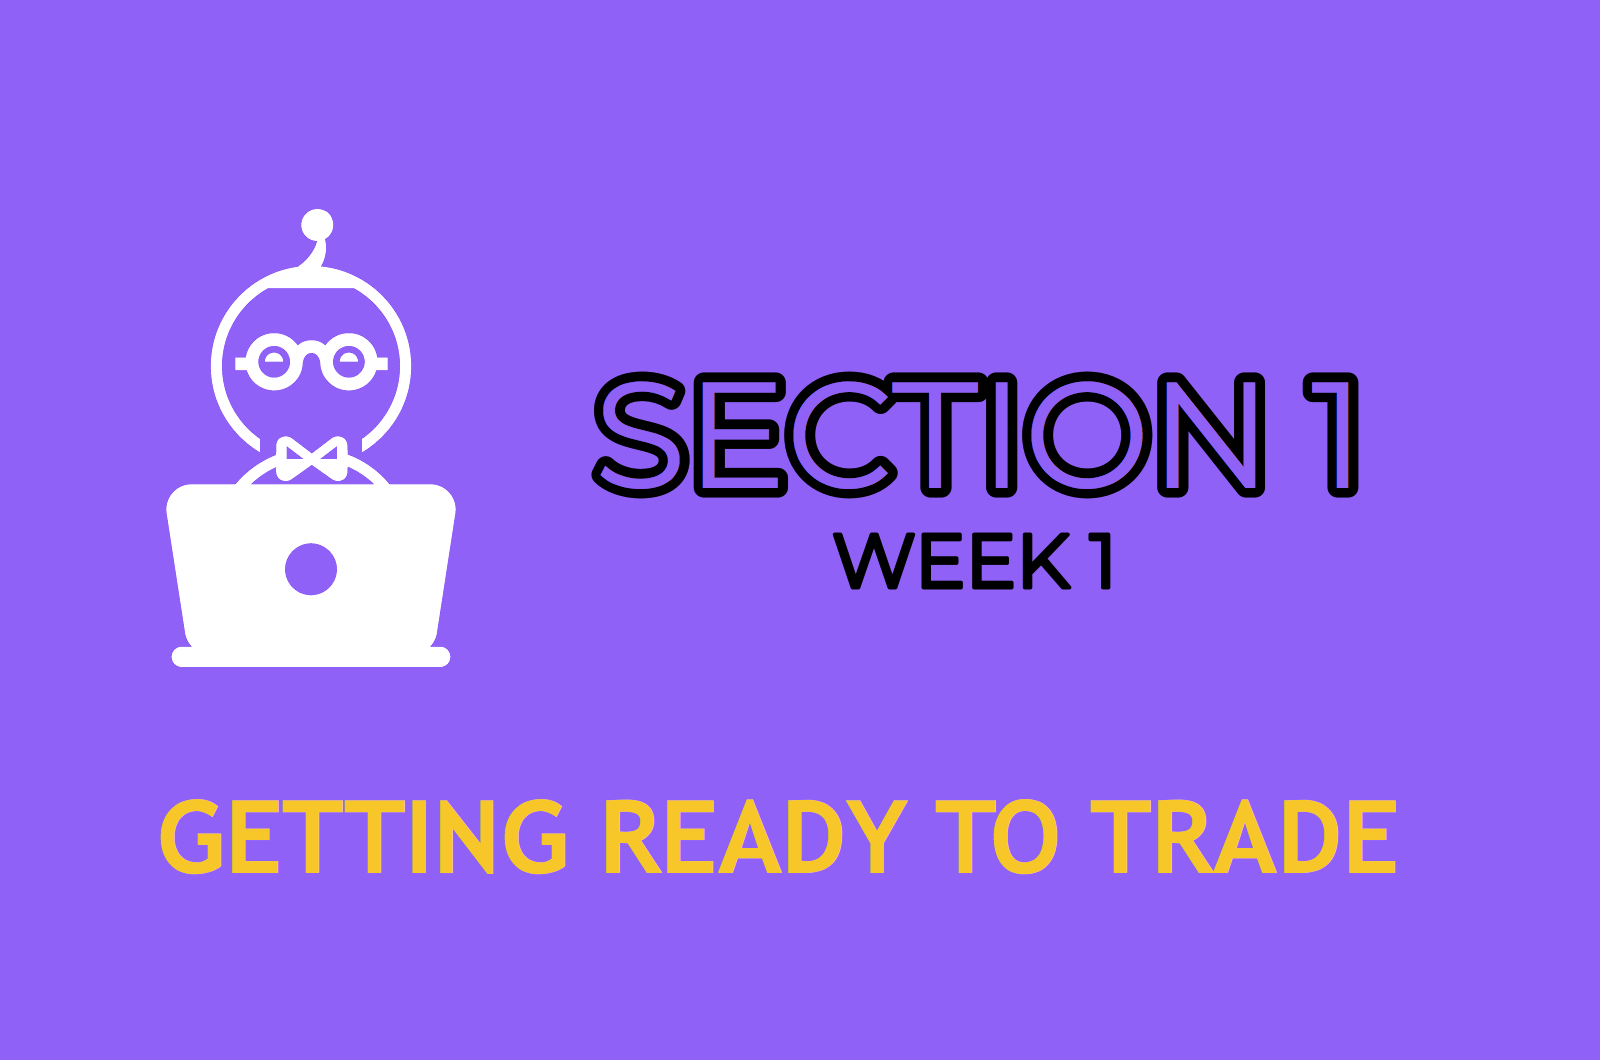 SECTION 1 (WEEK 1)    GETTING READY TO TRADE    ENTER